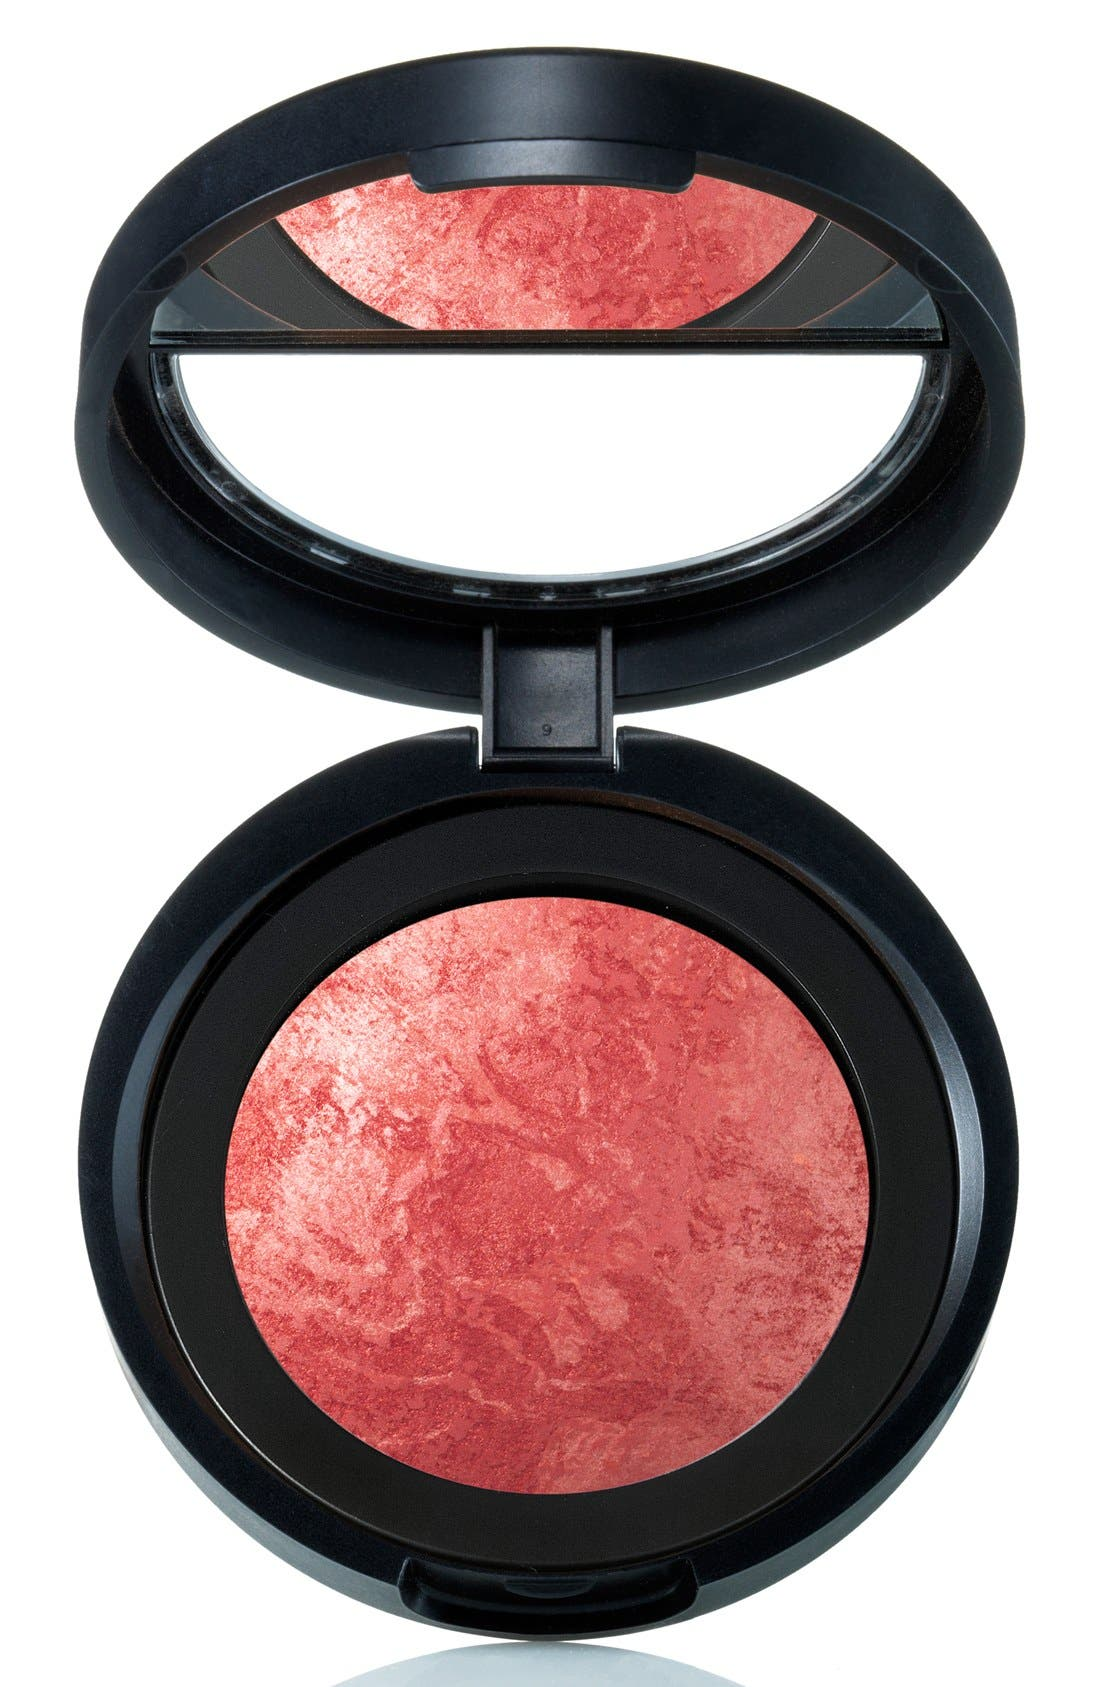 LAURA GELLER BEAUTY Blush-n-Brighten Baked Blush, Main, color, FRUIT PUNCH